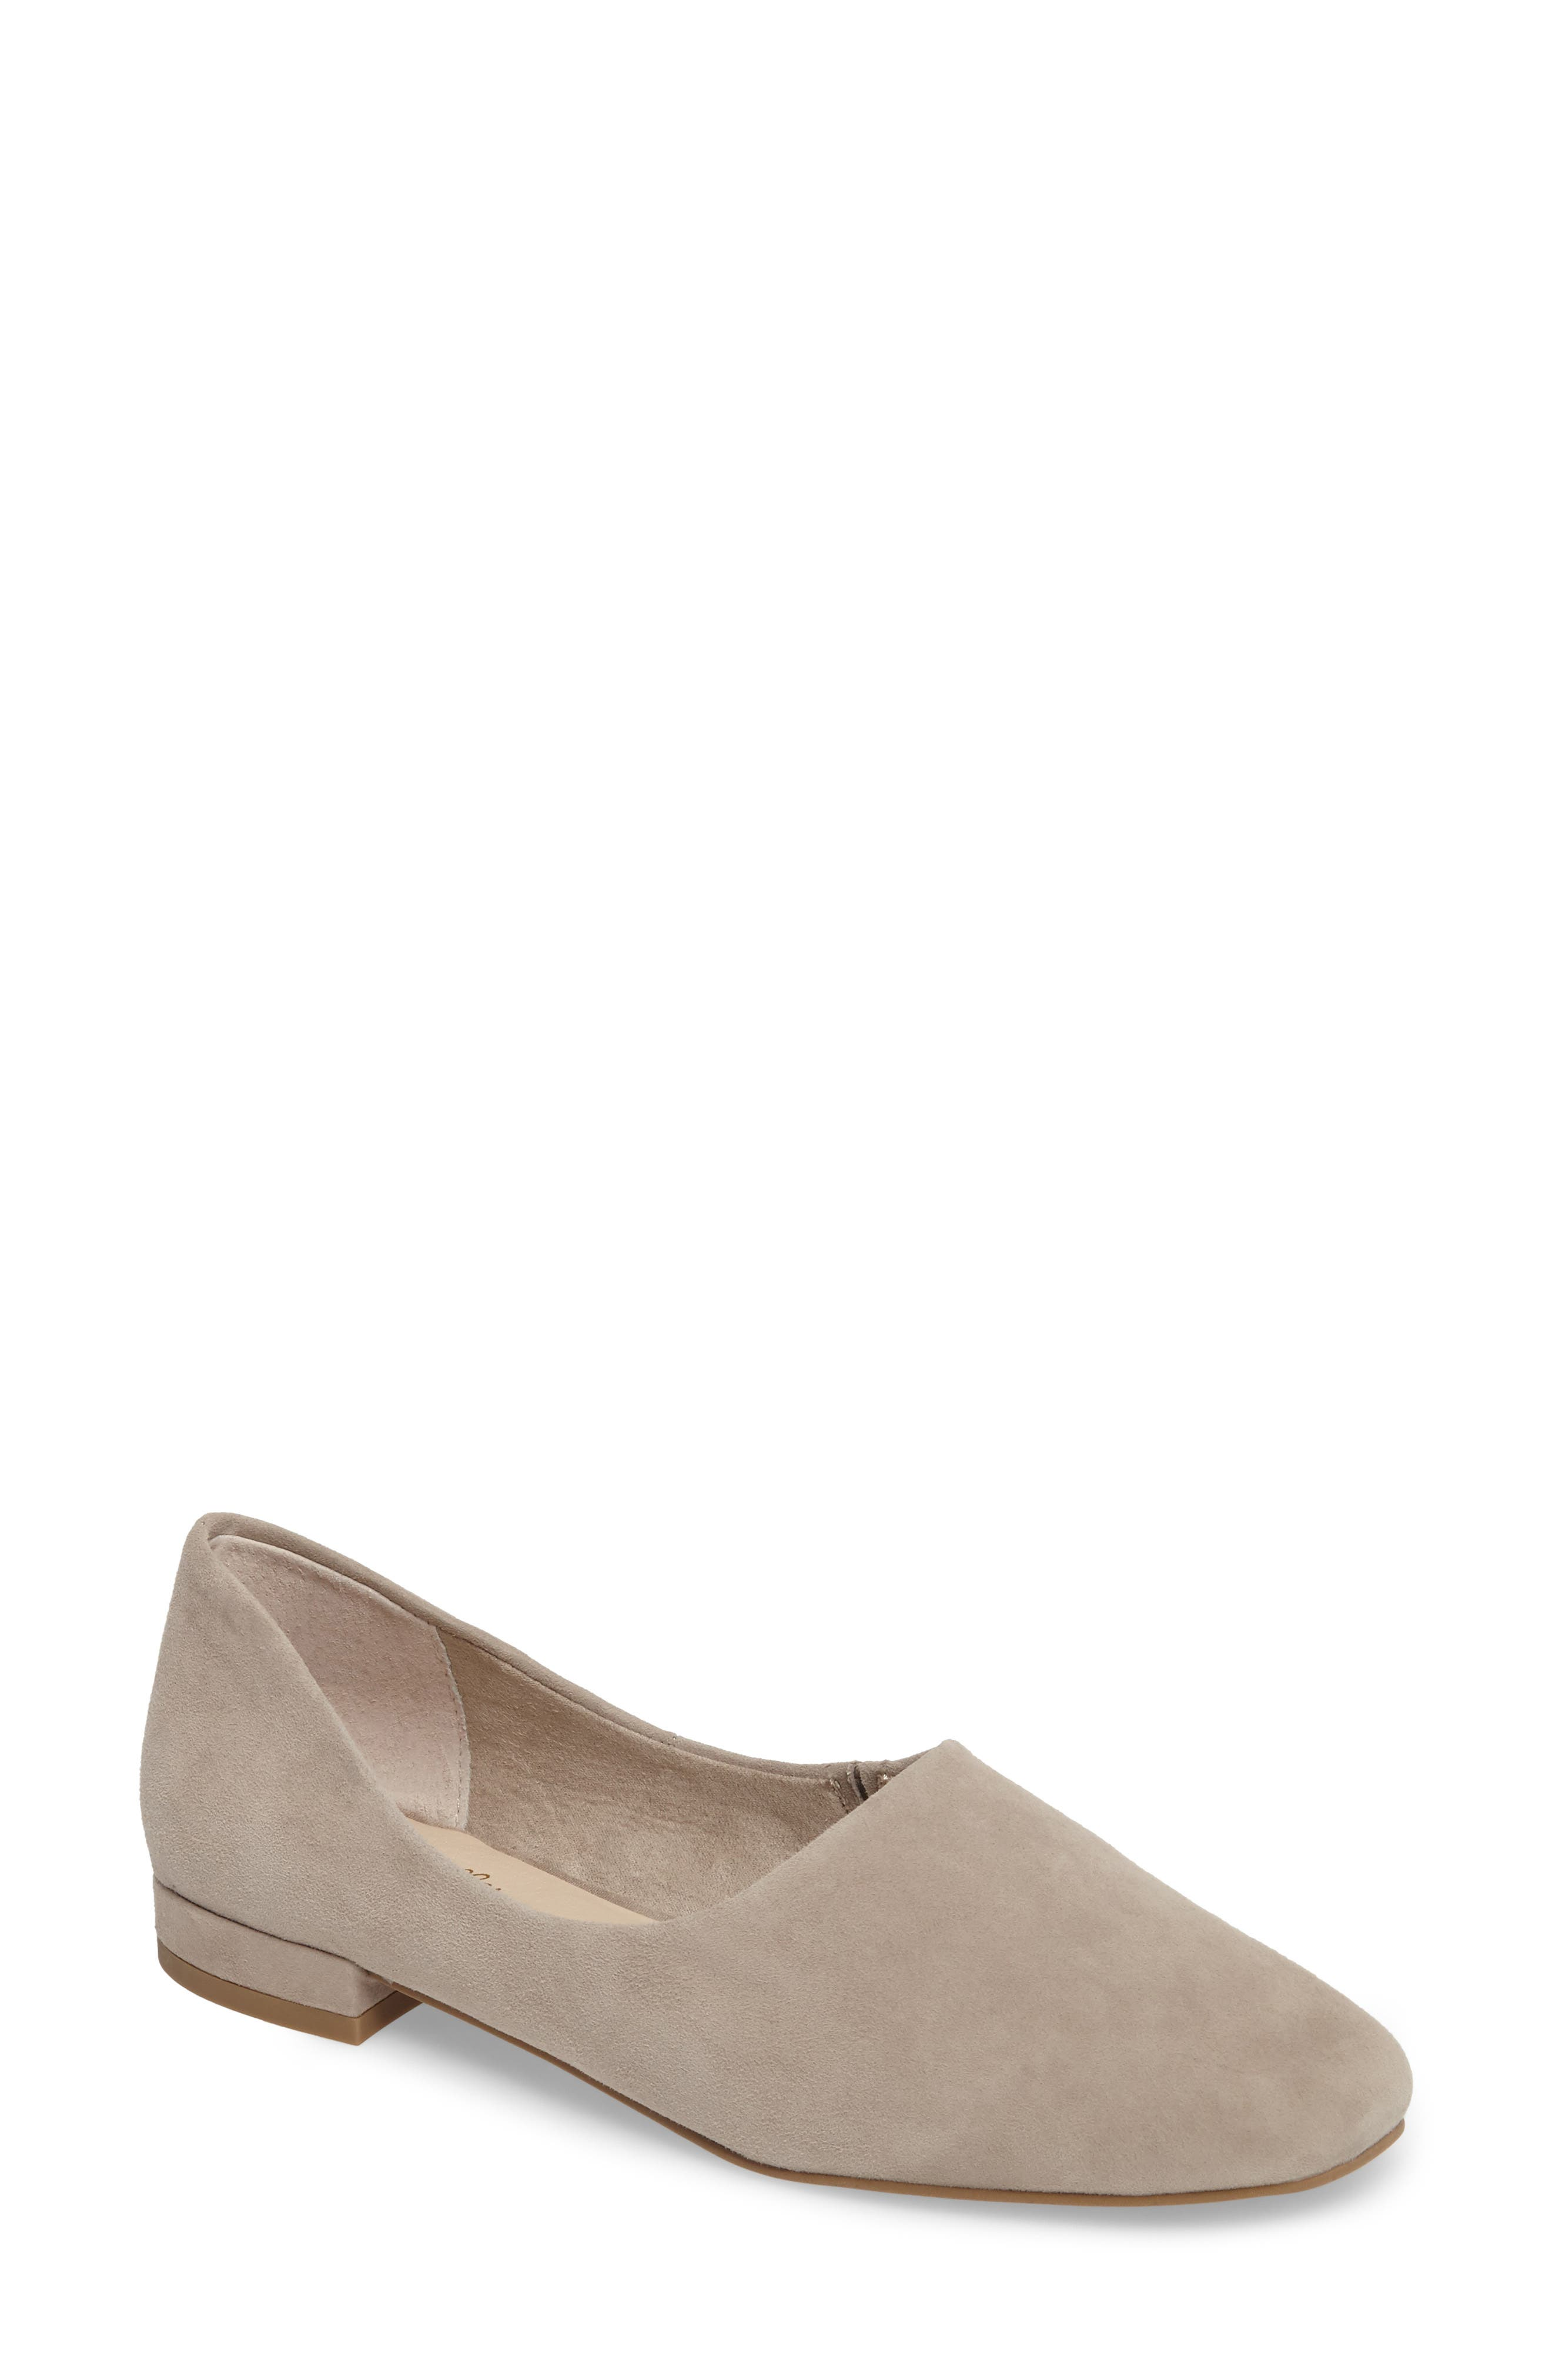 Role Flat,                             Main thumbnail 1, color,                             Taupe Suede